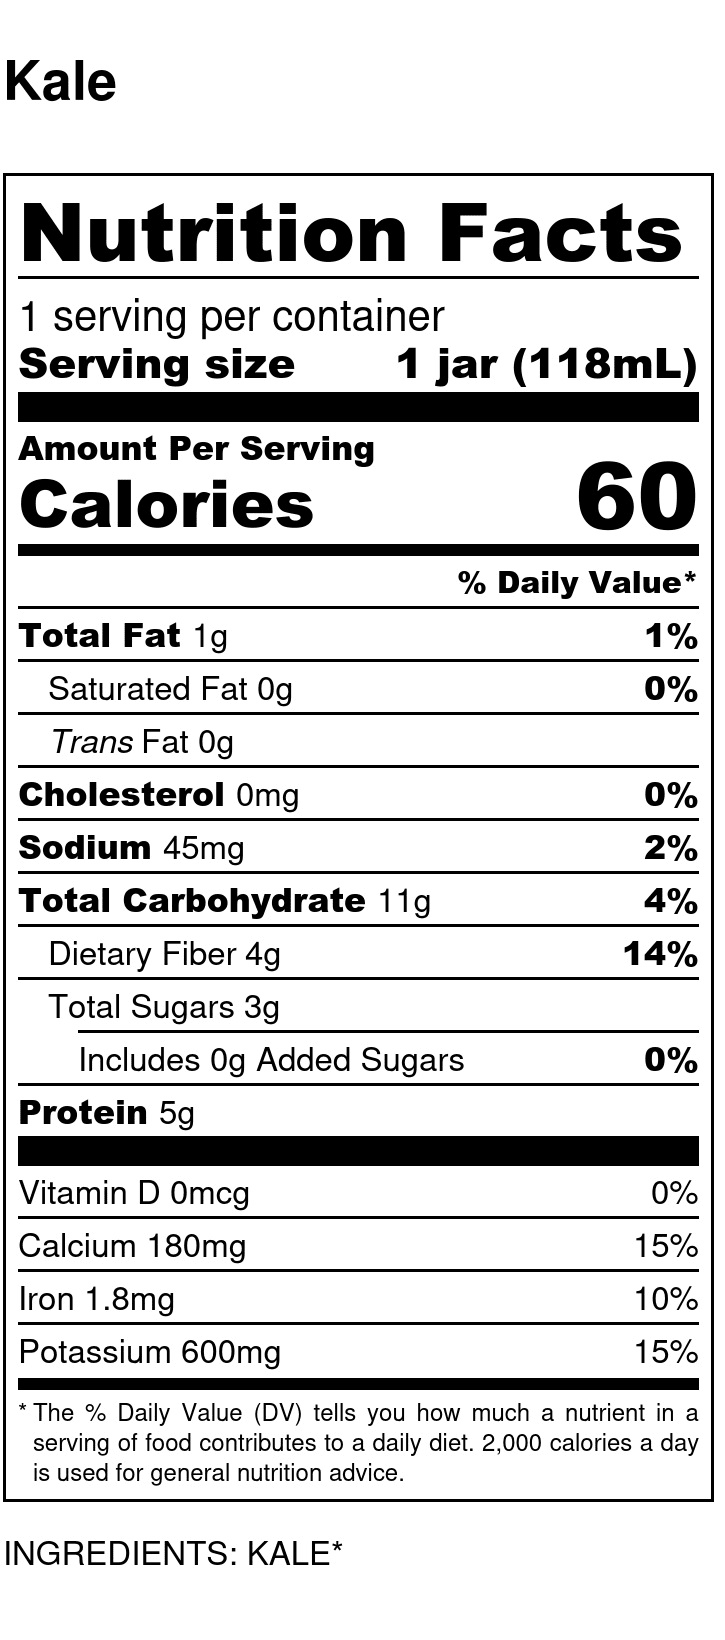 Yumi Kale nutrition facts